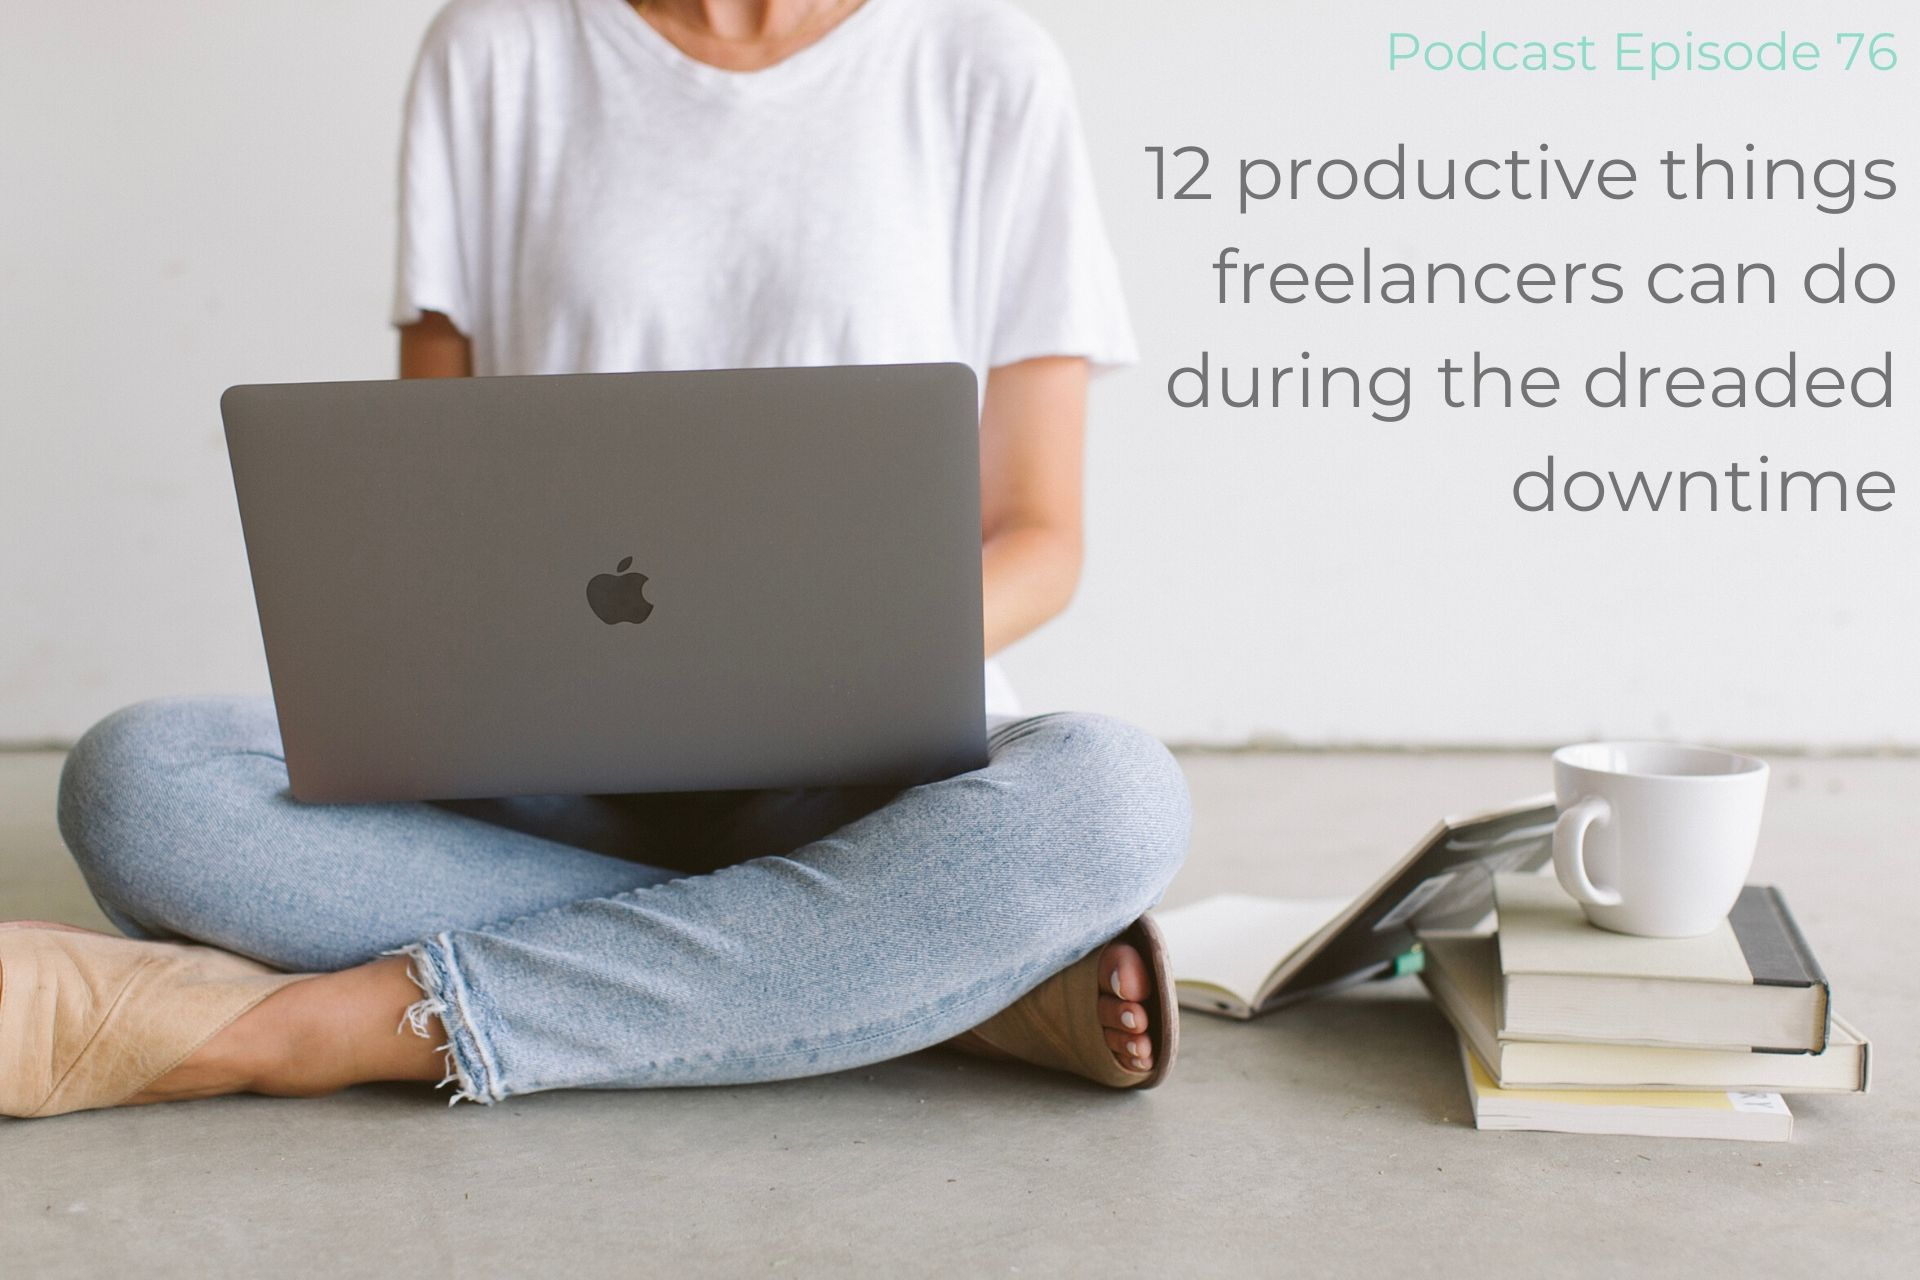 12 things freelancers can do during downtime : Podcast episode 76